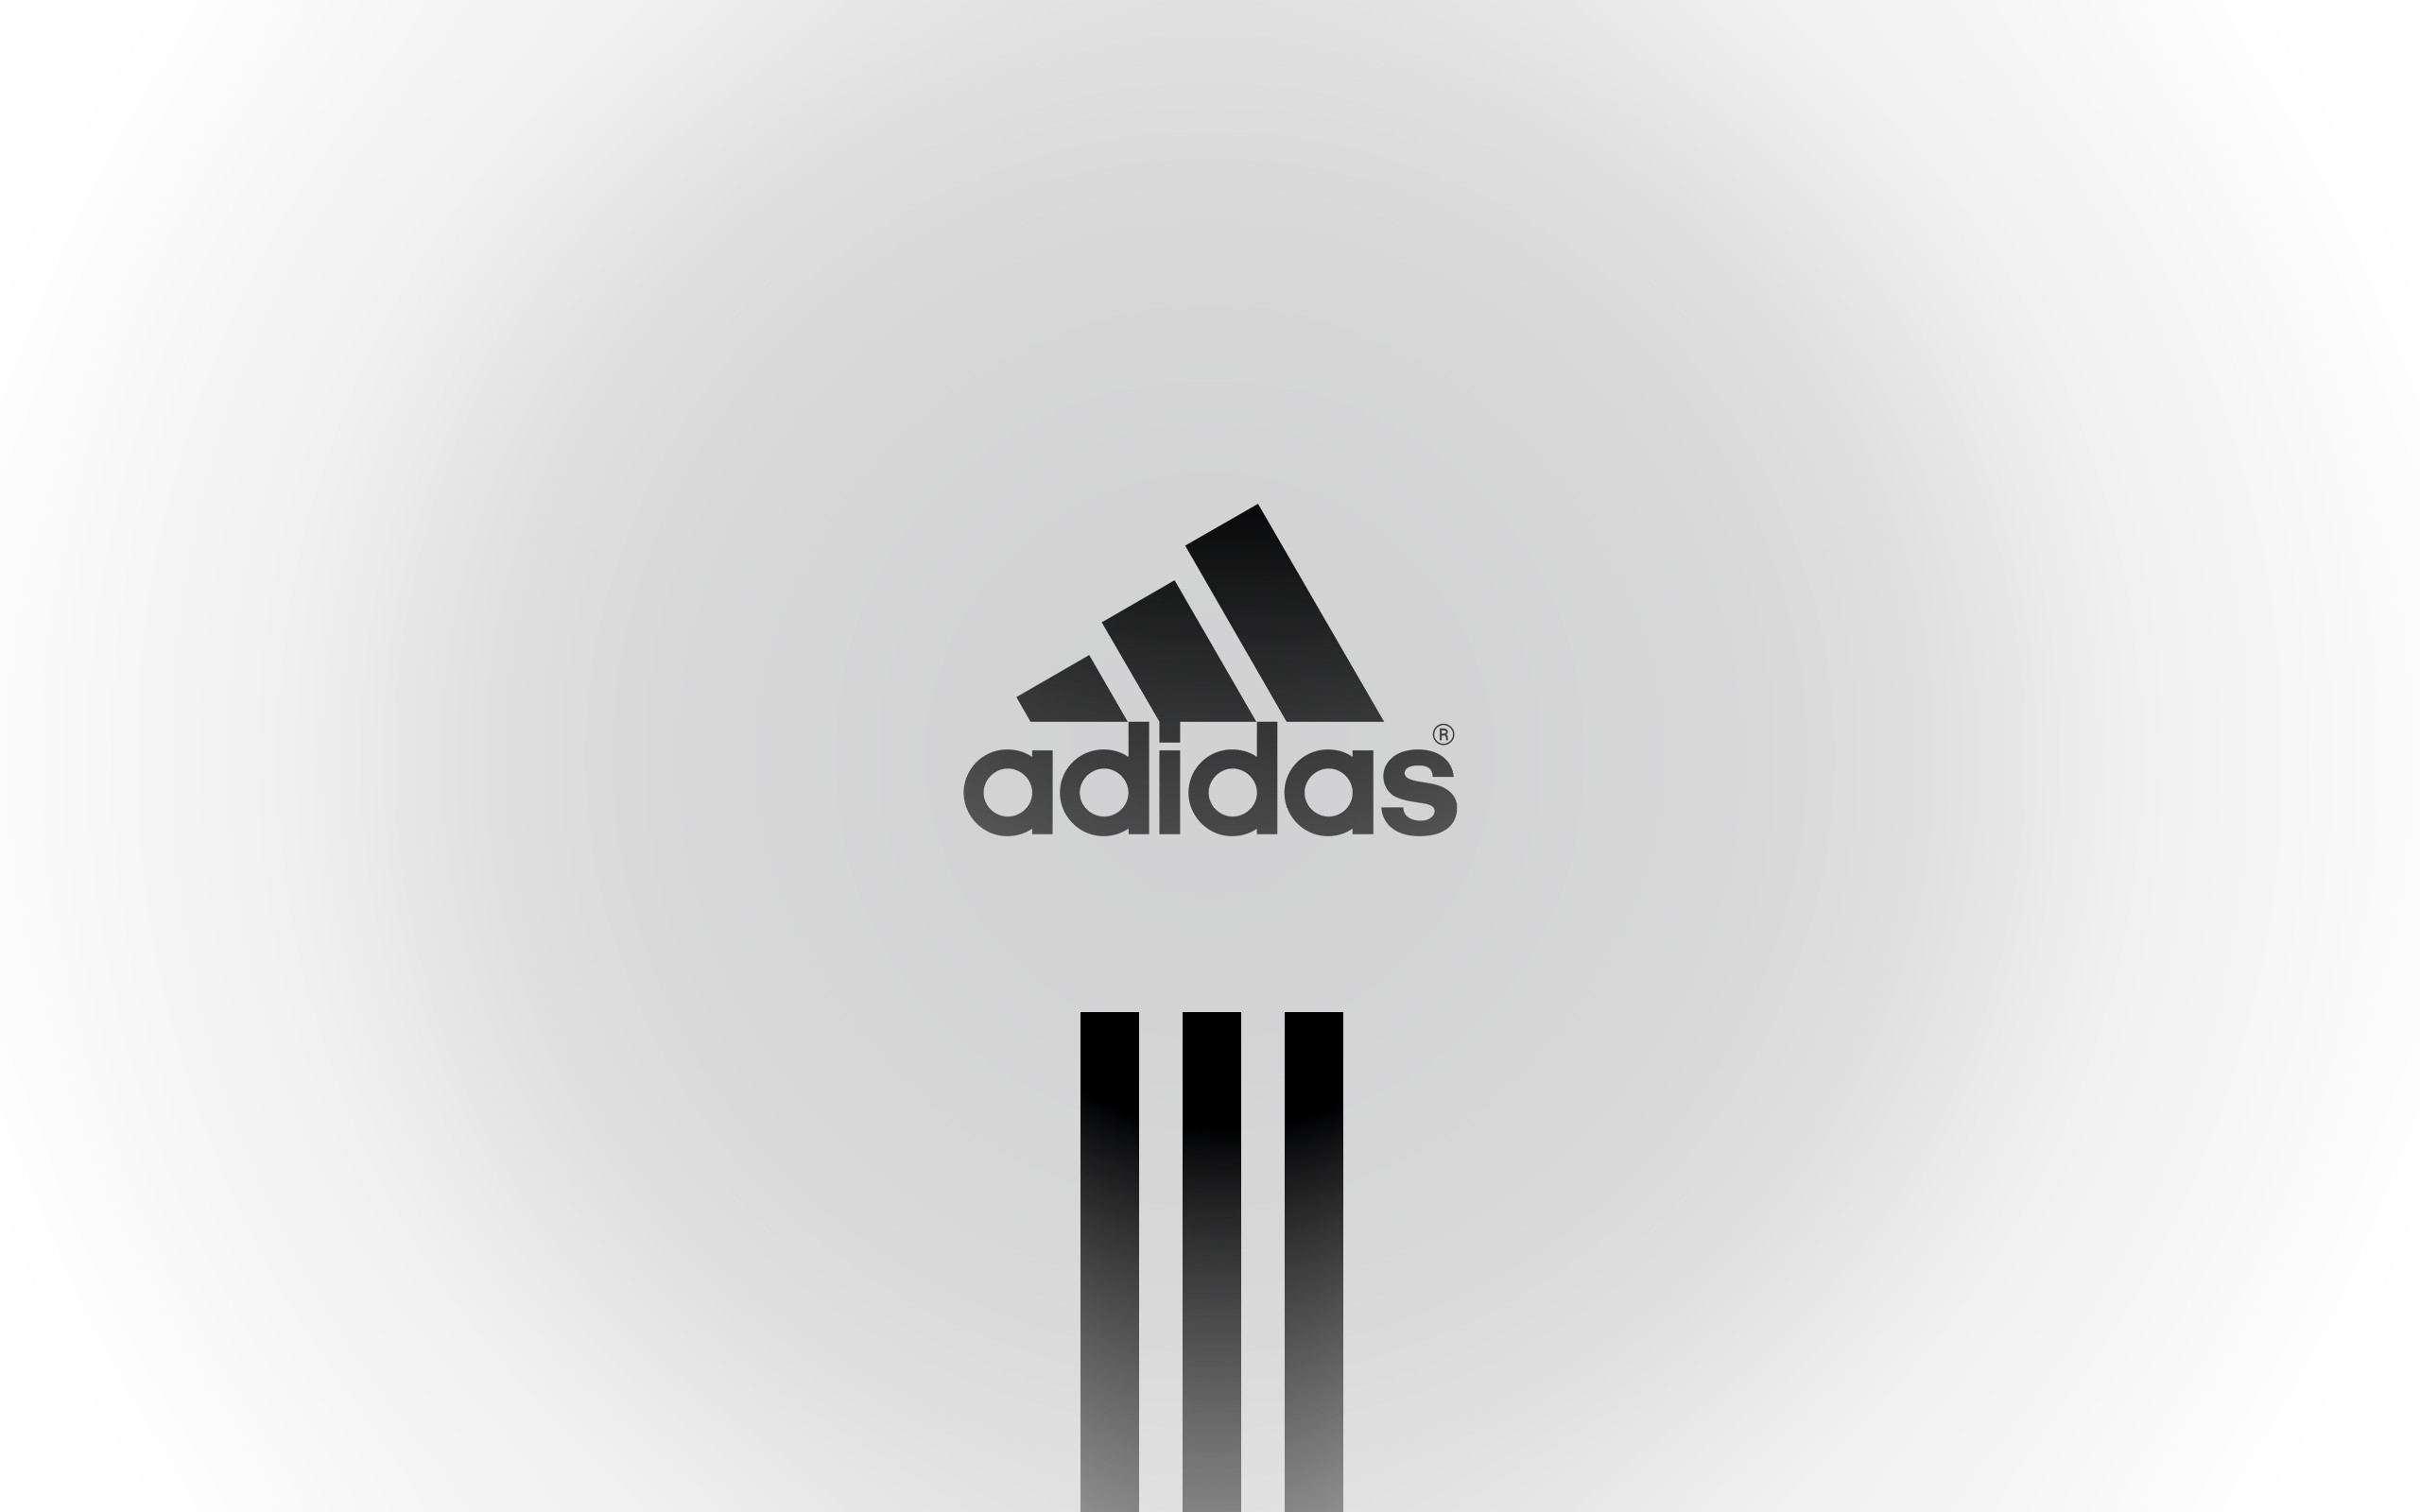 2560x1600 New HD Adidas Logo Wallpaper-2